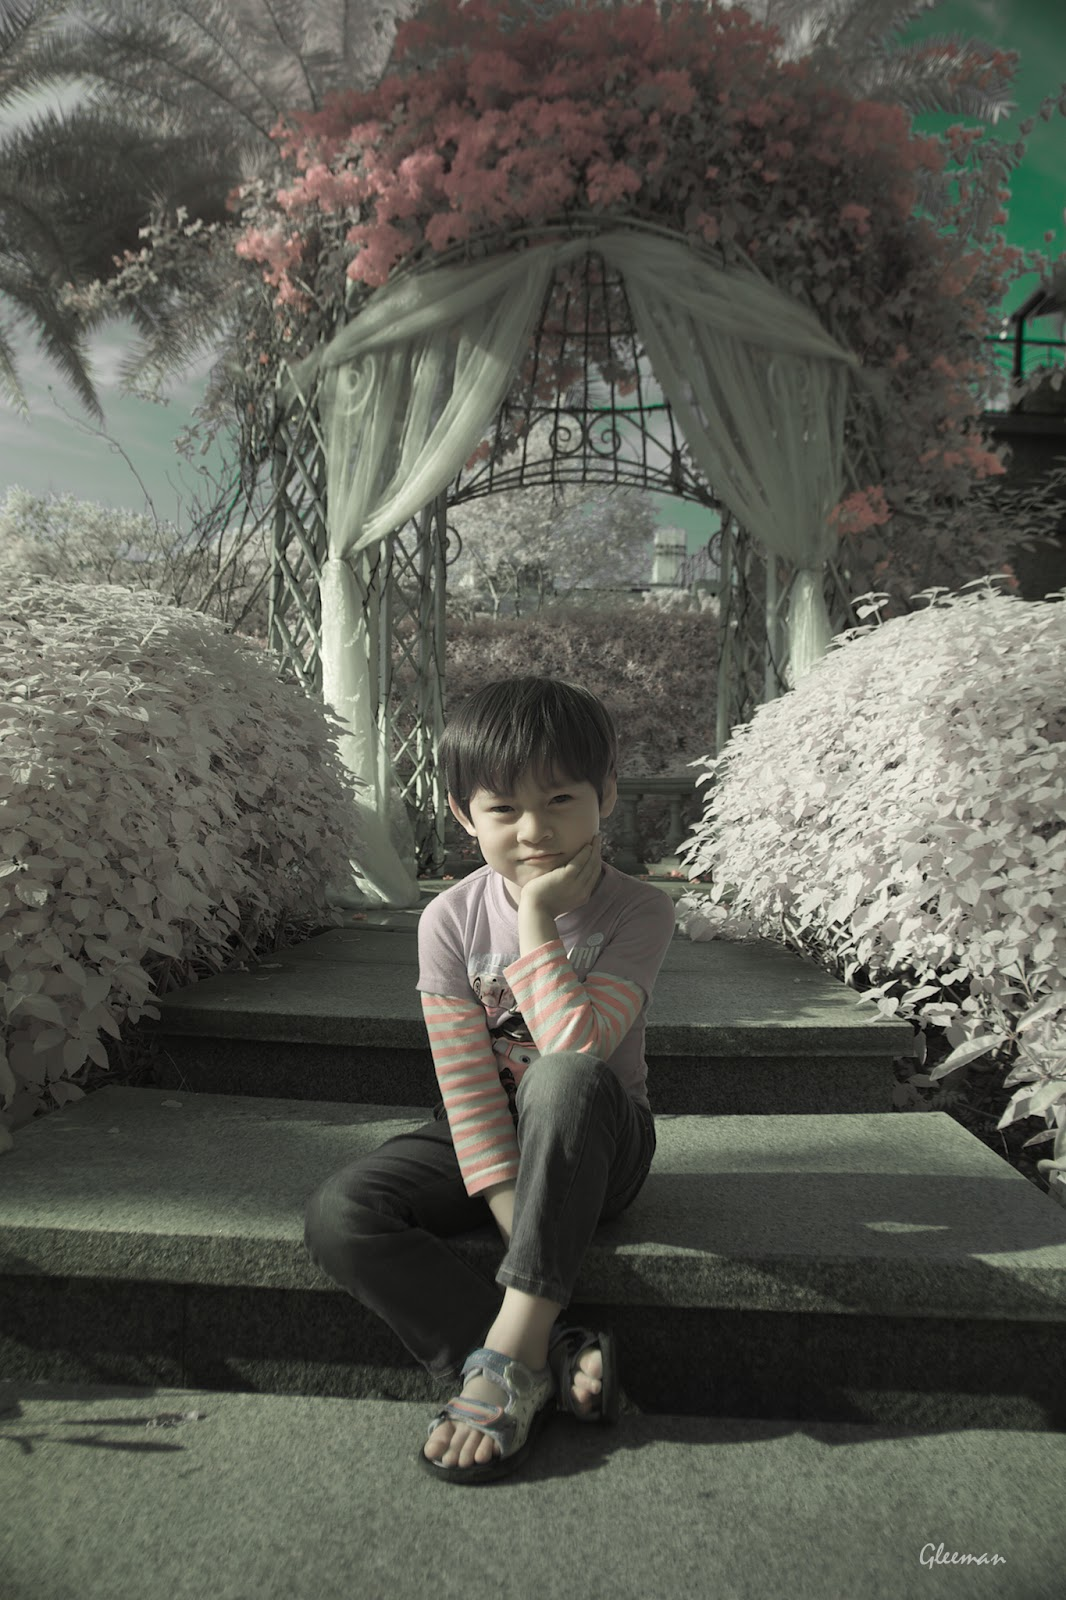 彩色紅外線攝影 (Pentax K5 Color IR Photography)